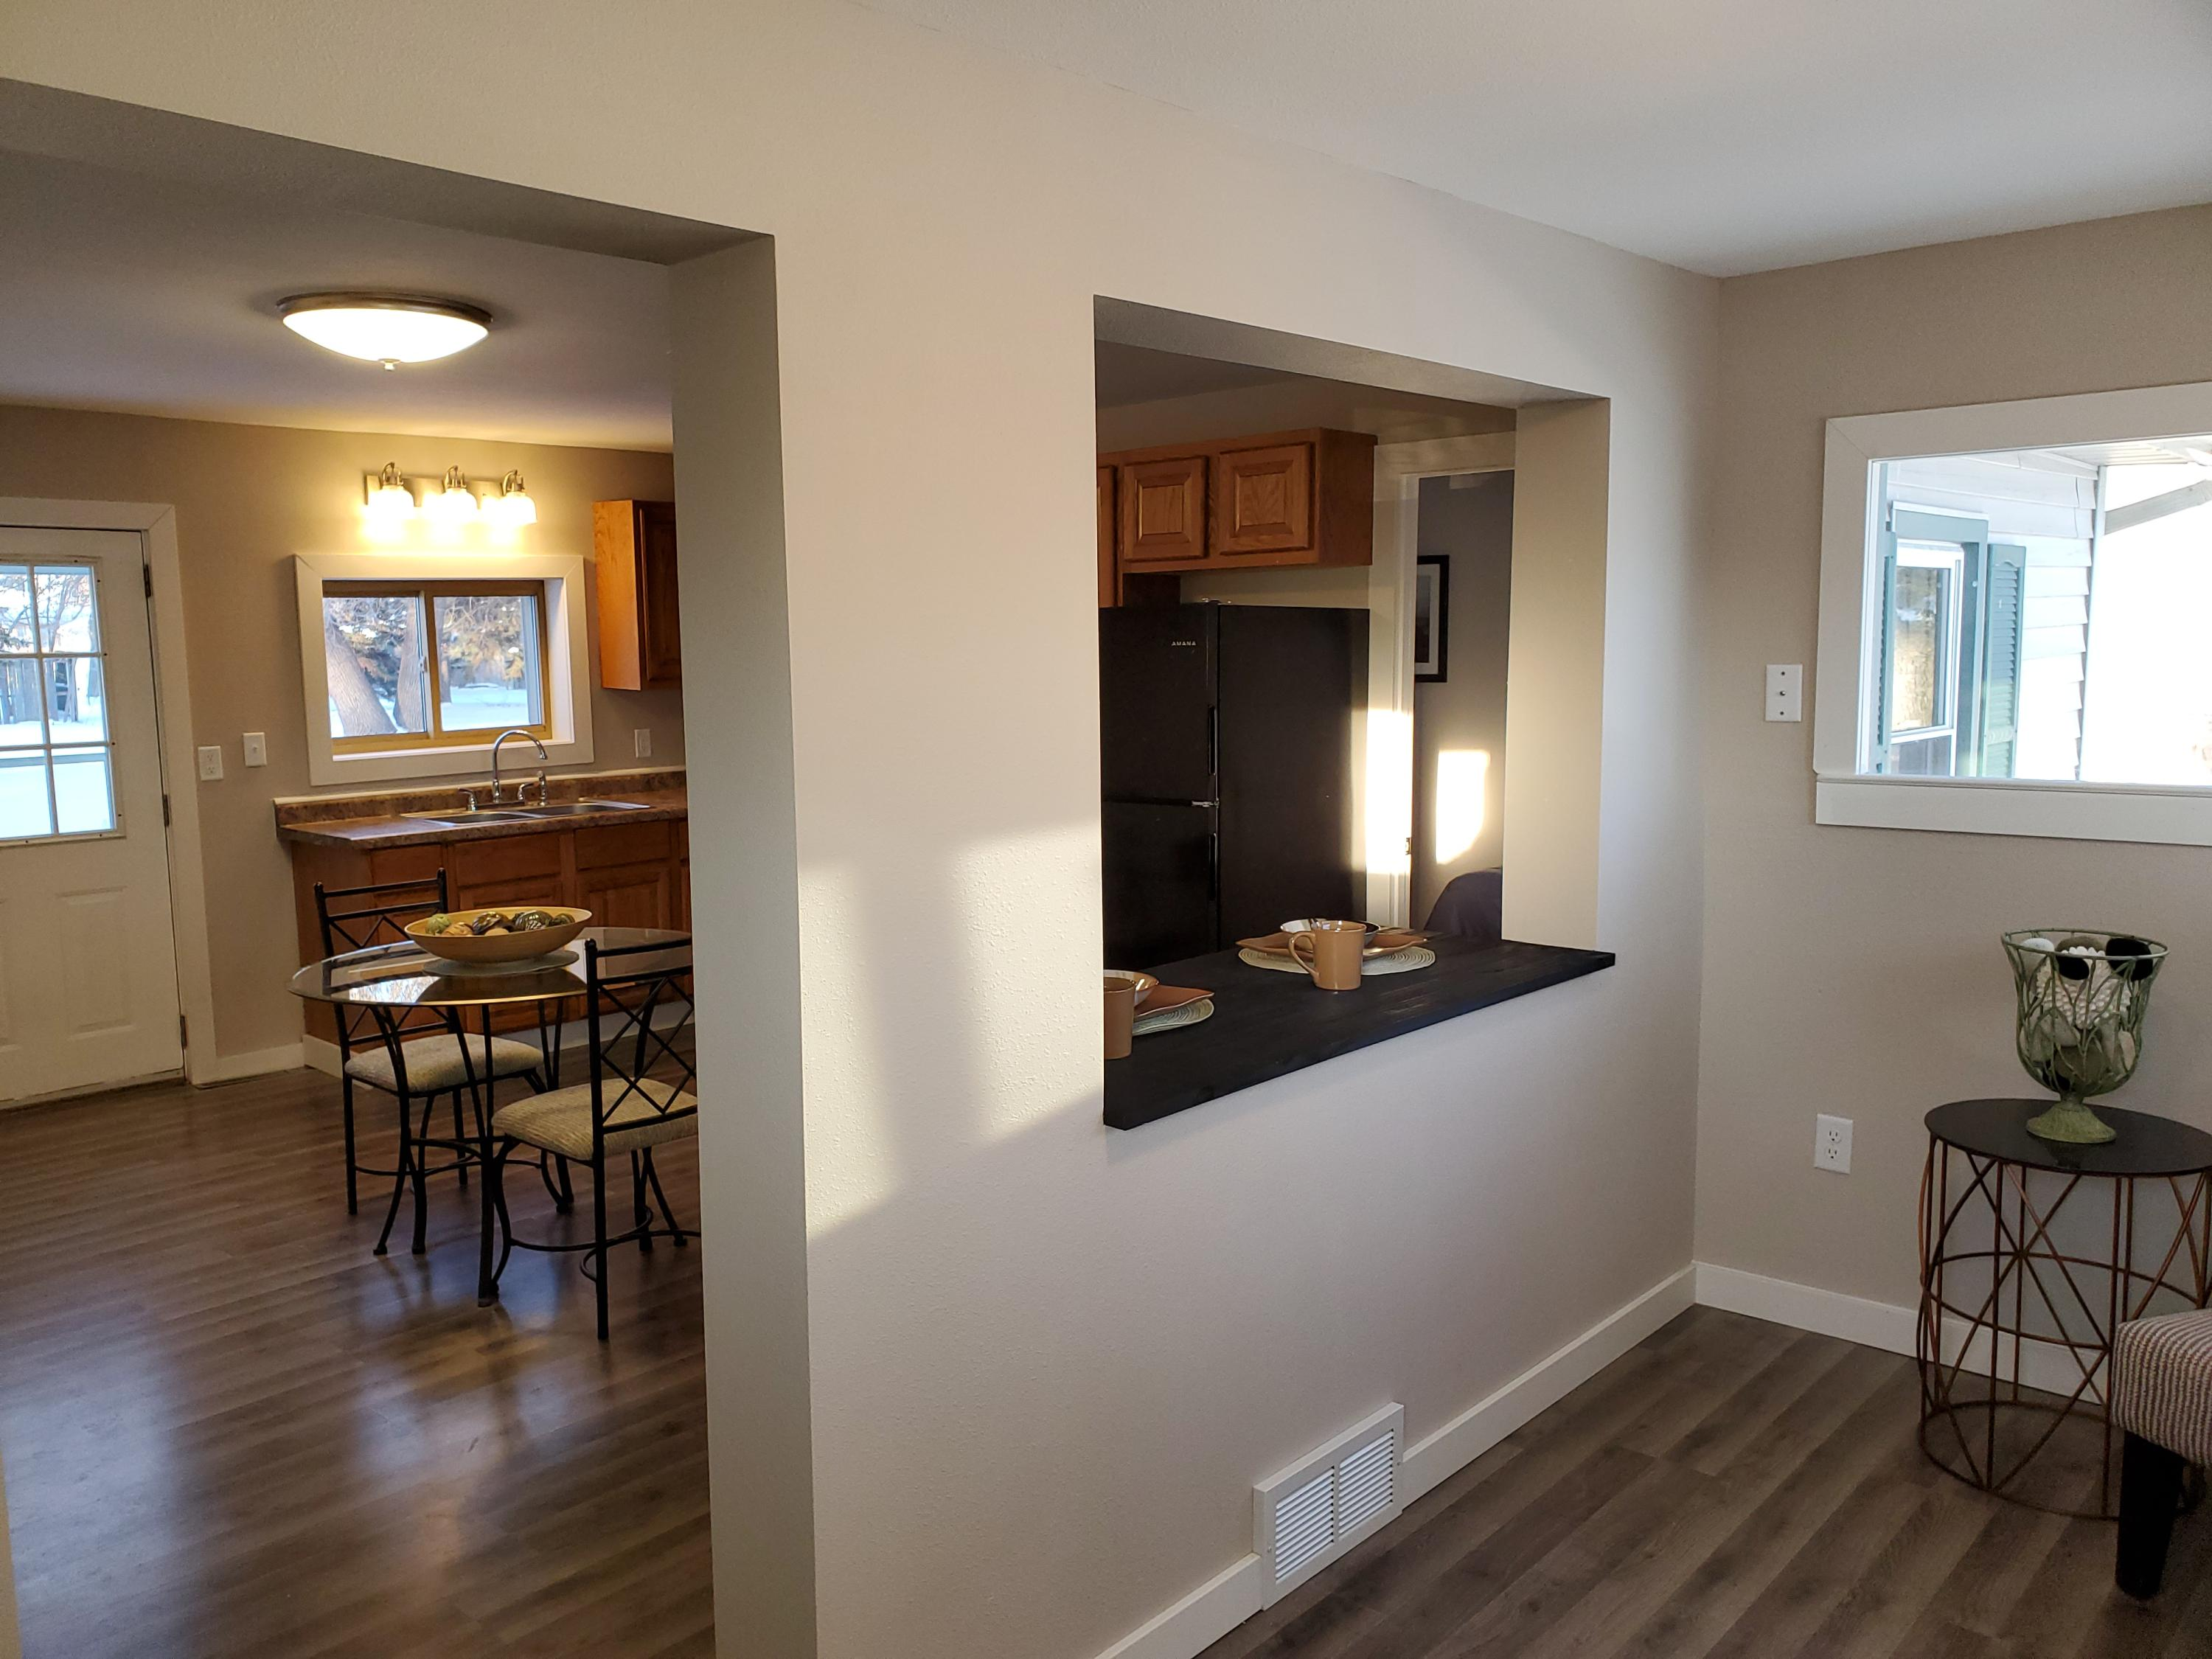 716 O'Connell St, Watertown, Wisconsin 53094, 3 Bedrooms Bedrooms, 5 Rooms Rooms,2 BathroomsBathrooms,Single-Family,For Sale,O'Connell St,1677022